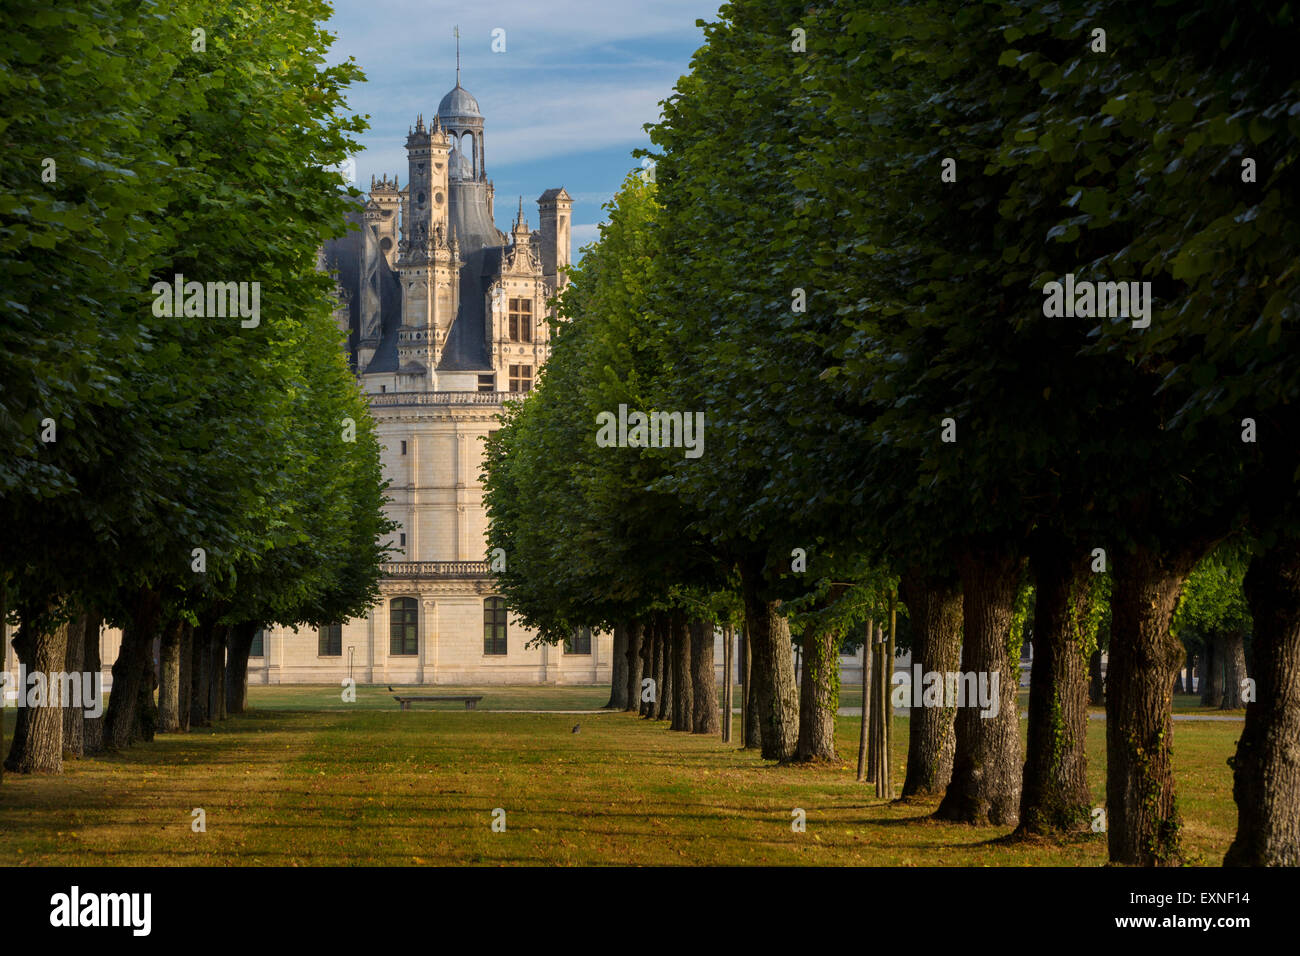 Early morning over Chateau de Chambord - originally built as a hunting lodge for King Francis I, Loire-et-Cher, - Stock Image